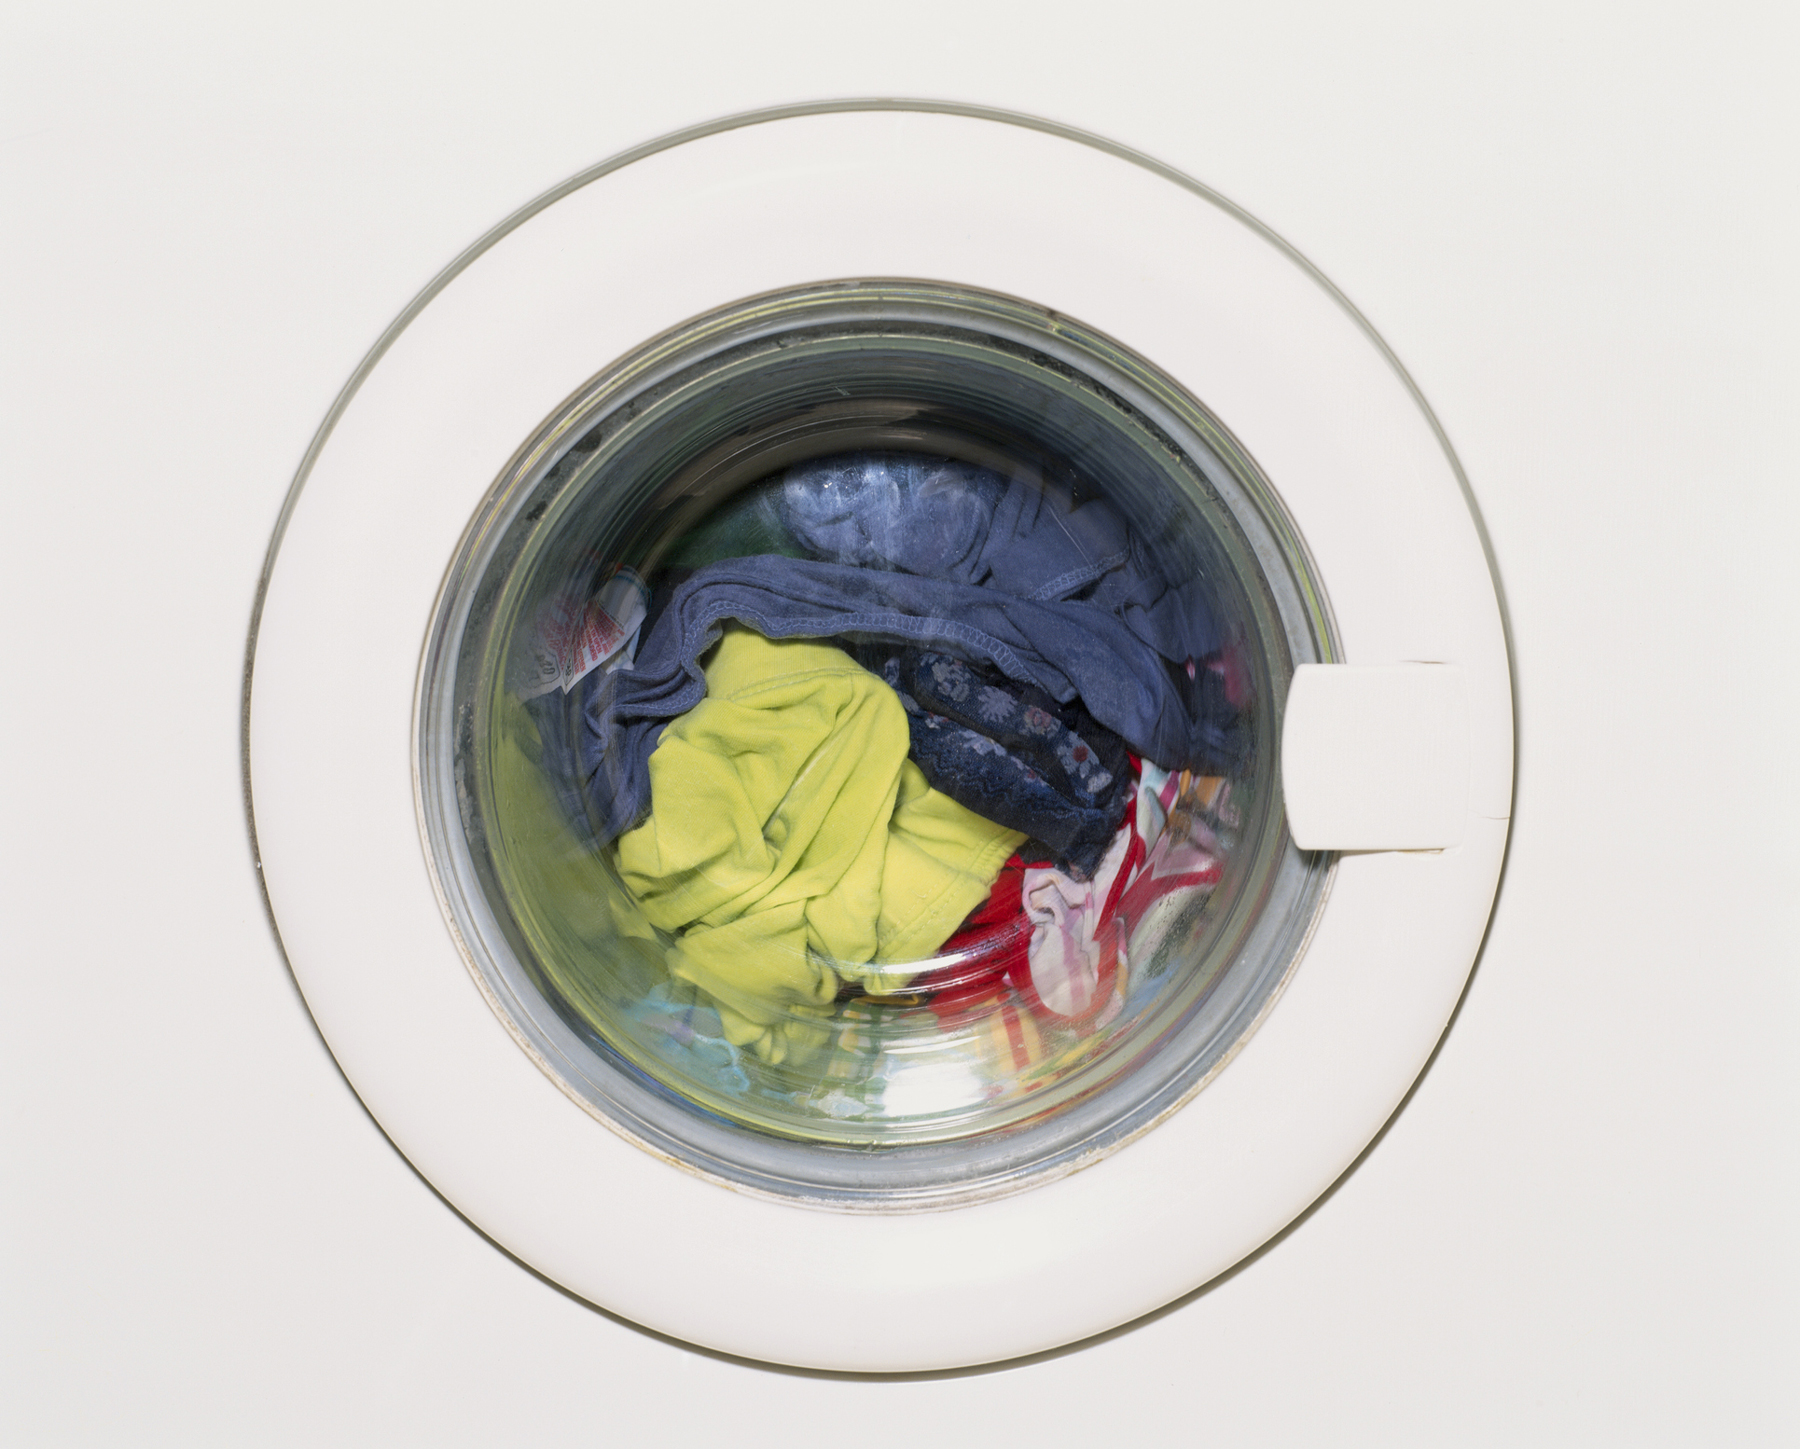 Washing workout clothes mistakes - washing machine